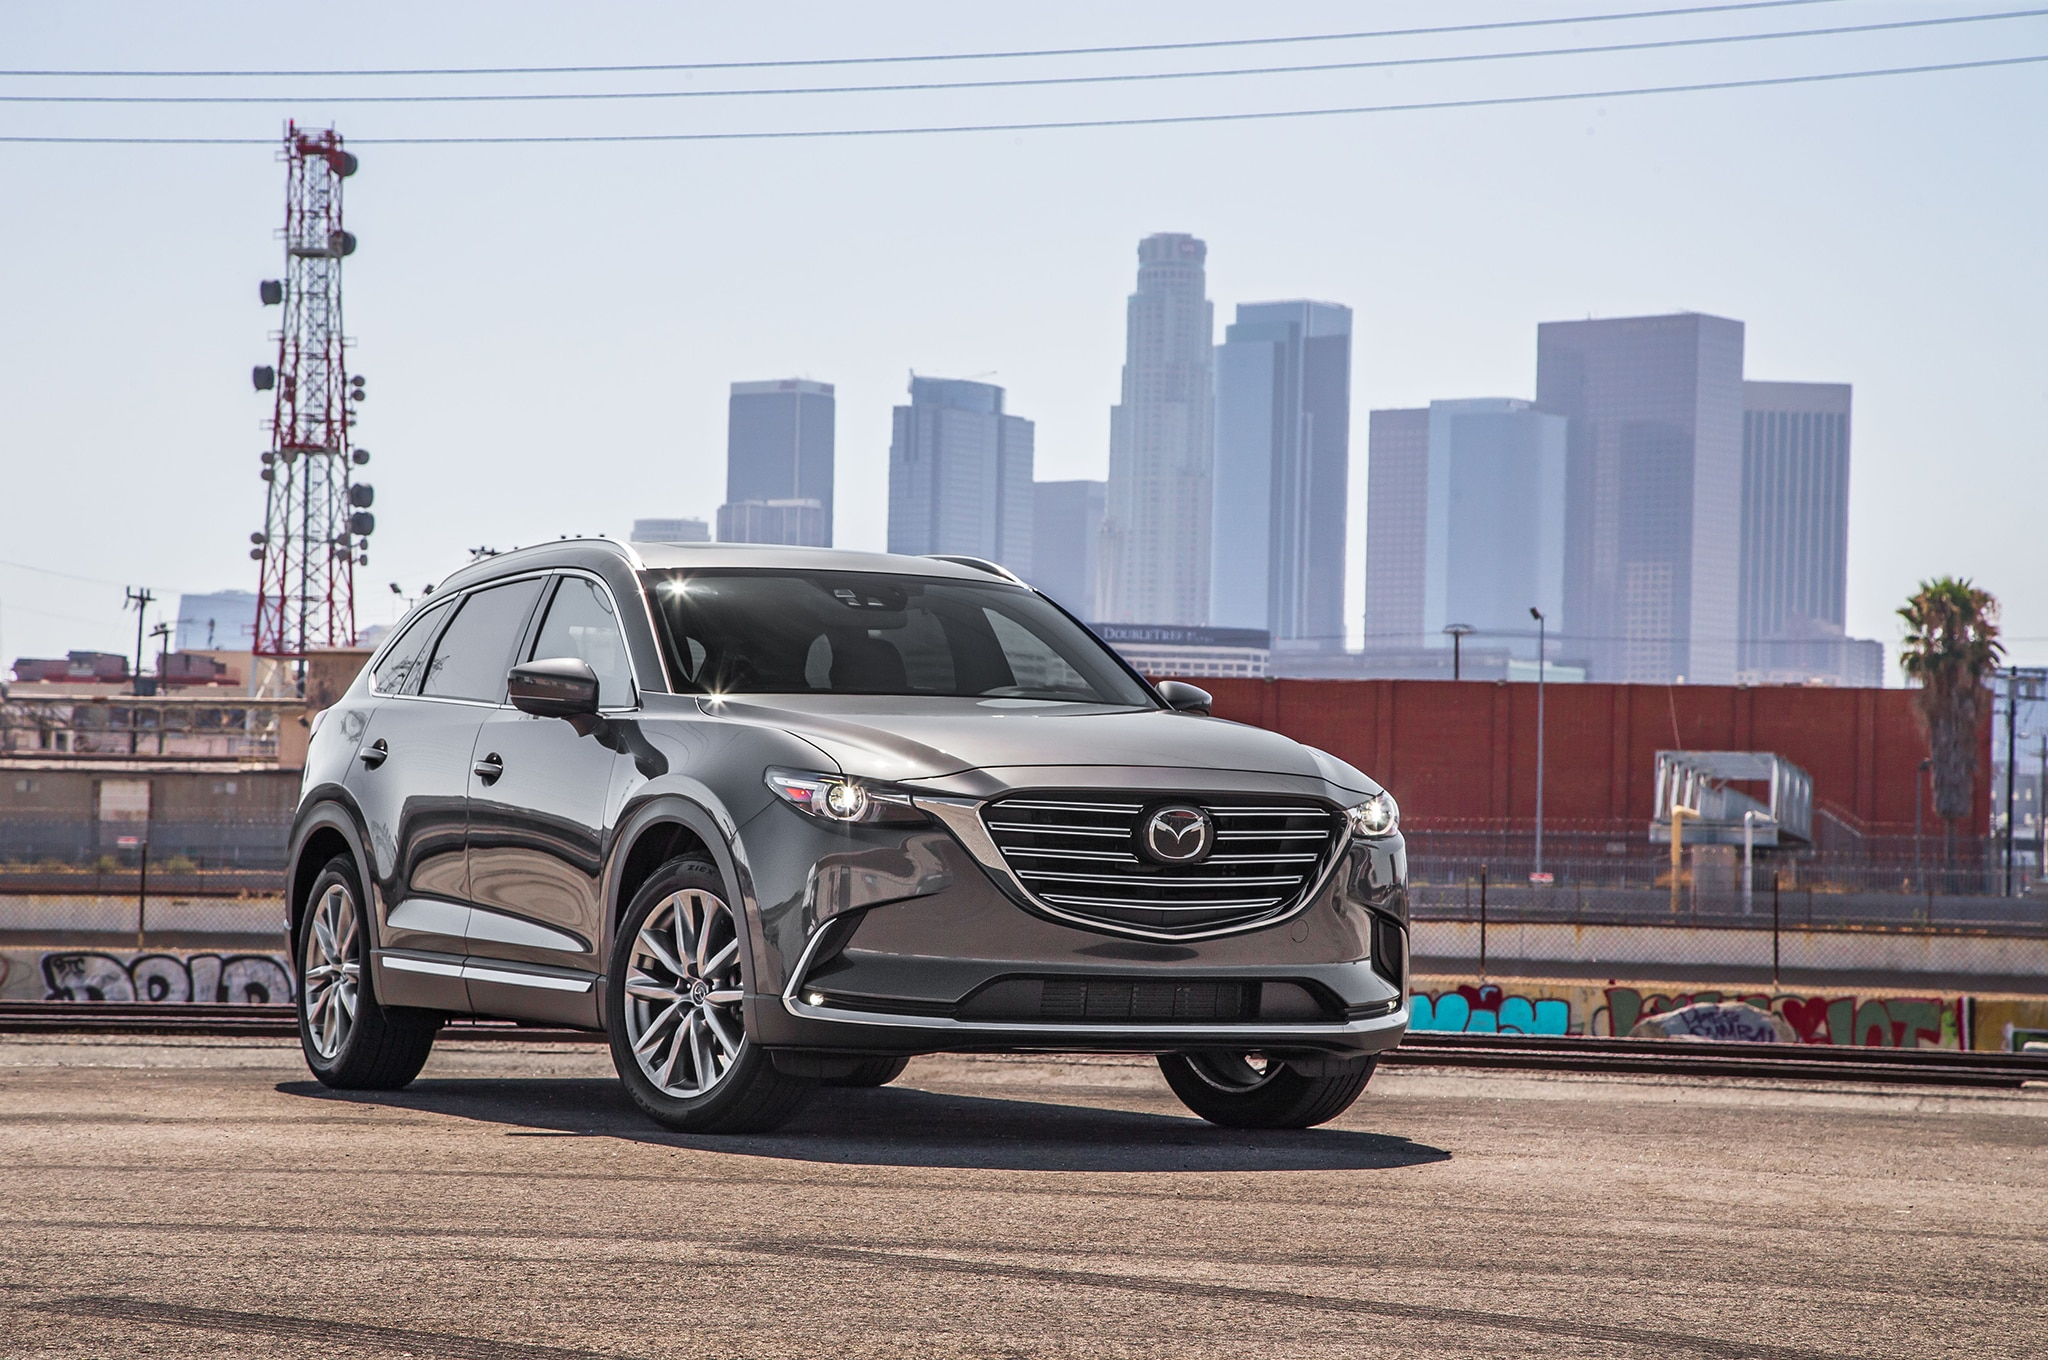 2017 mazda cx 9 pricing stays the same as last year 39 s. Black Bedroom Furniture Sets. Home Design Ideas